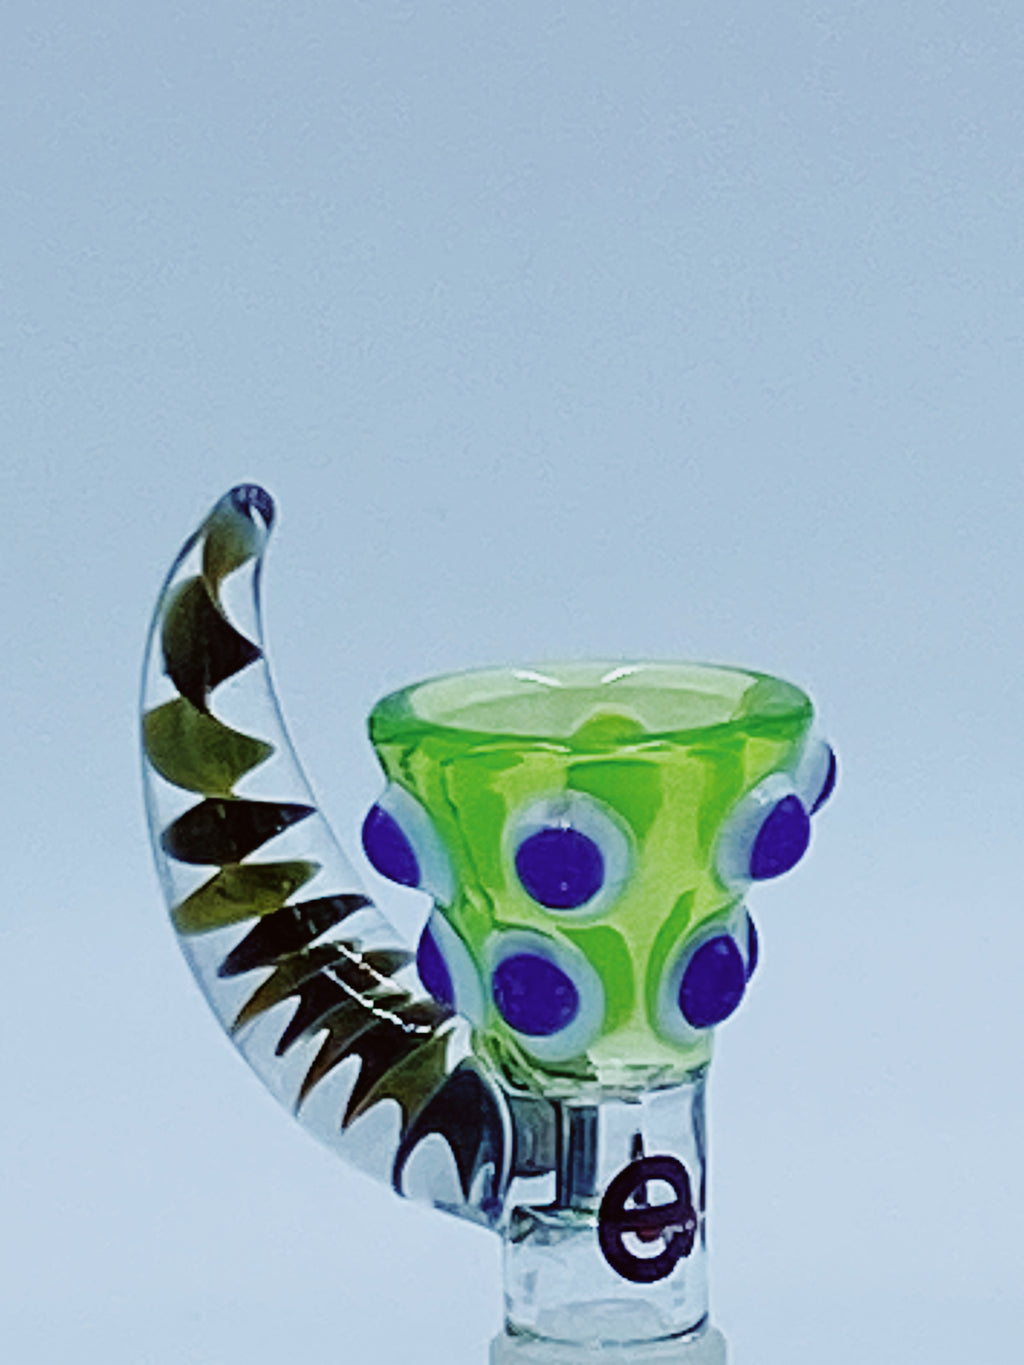 CHEECH GLASS 14MM UPHORN BOWL - Smoke Country - Land of the artistic glass blown bongs